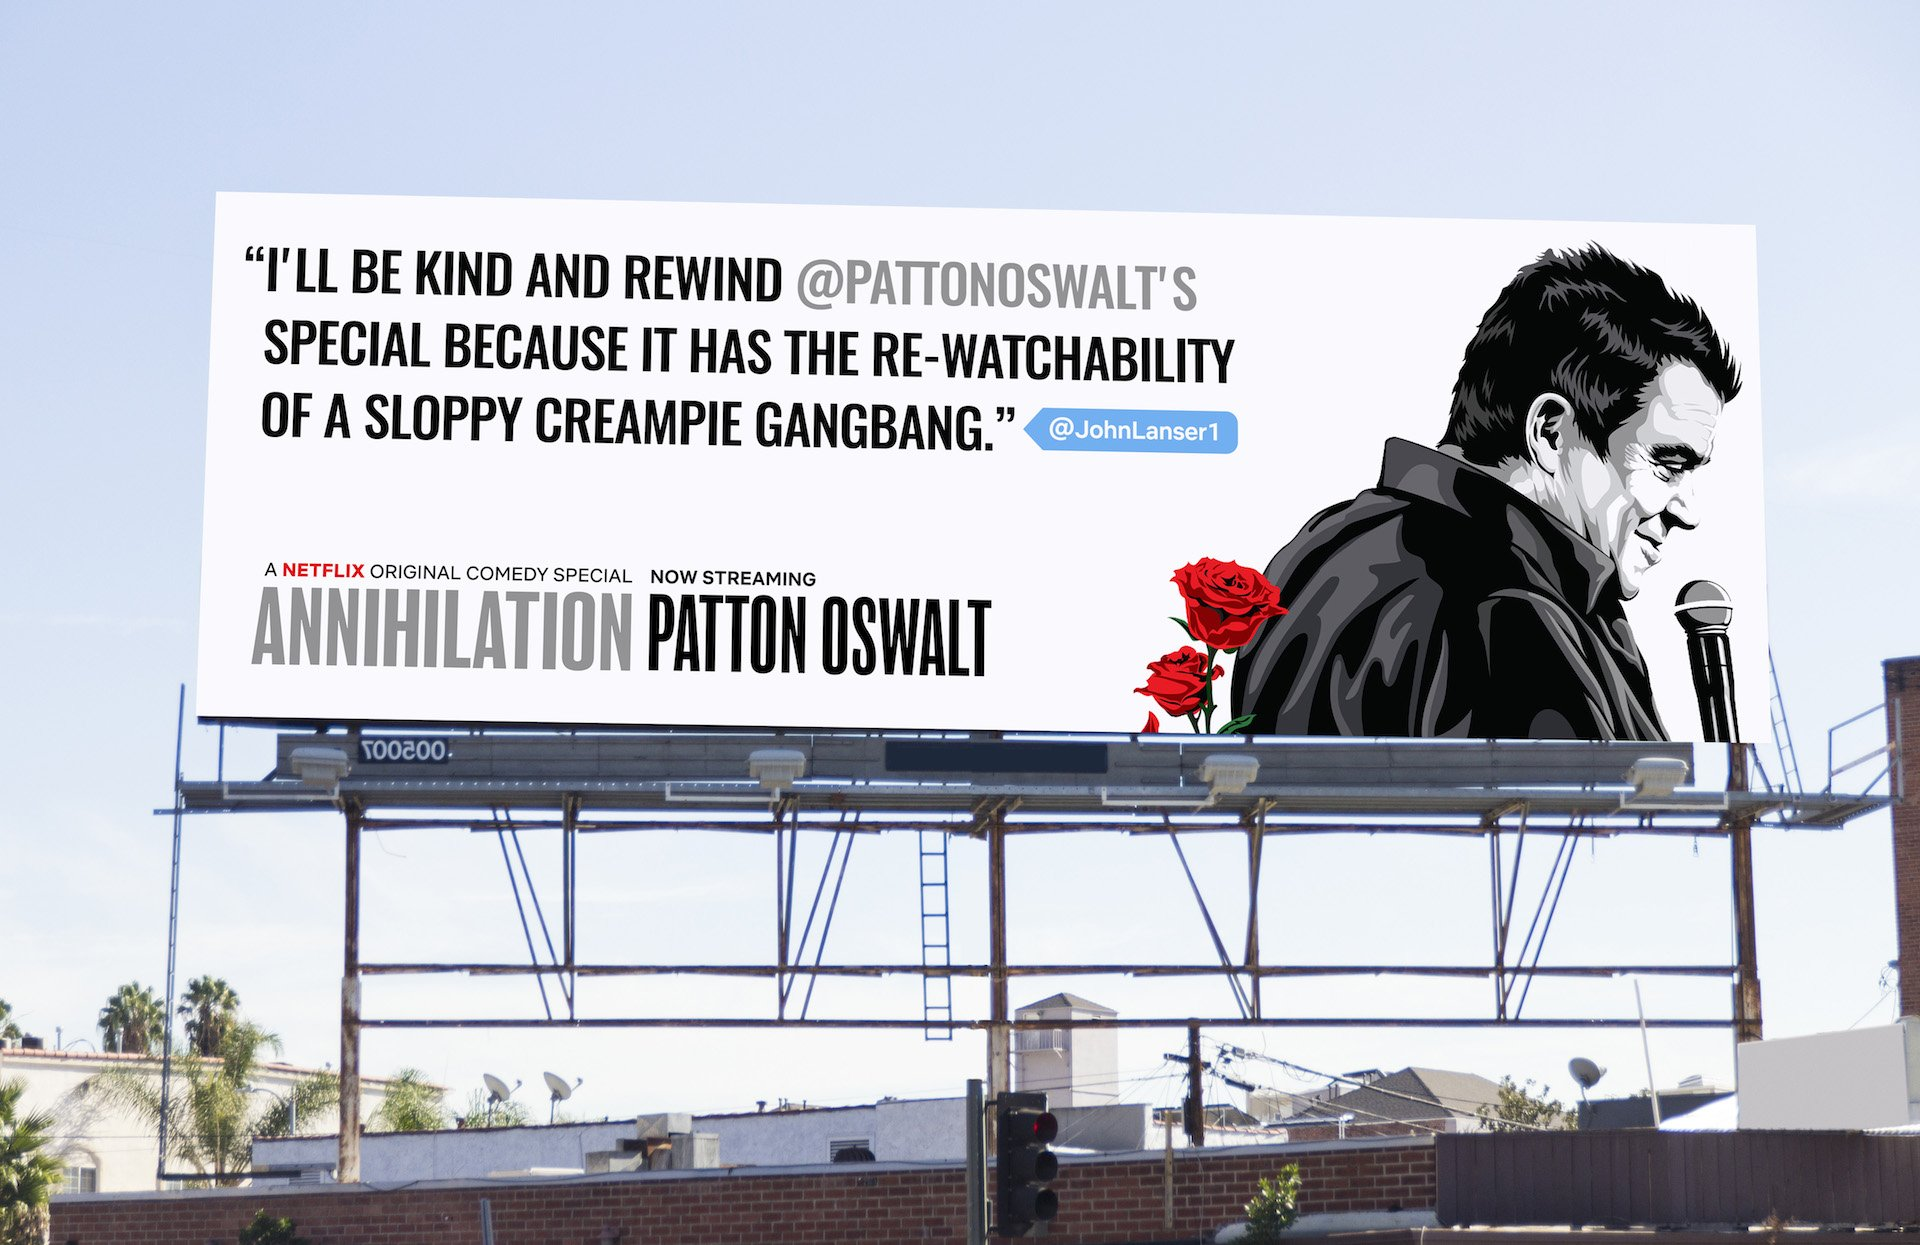 @pattonoswalt Remember, you asked for this https://t.co/qY8ekbNZA5